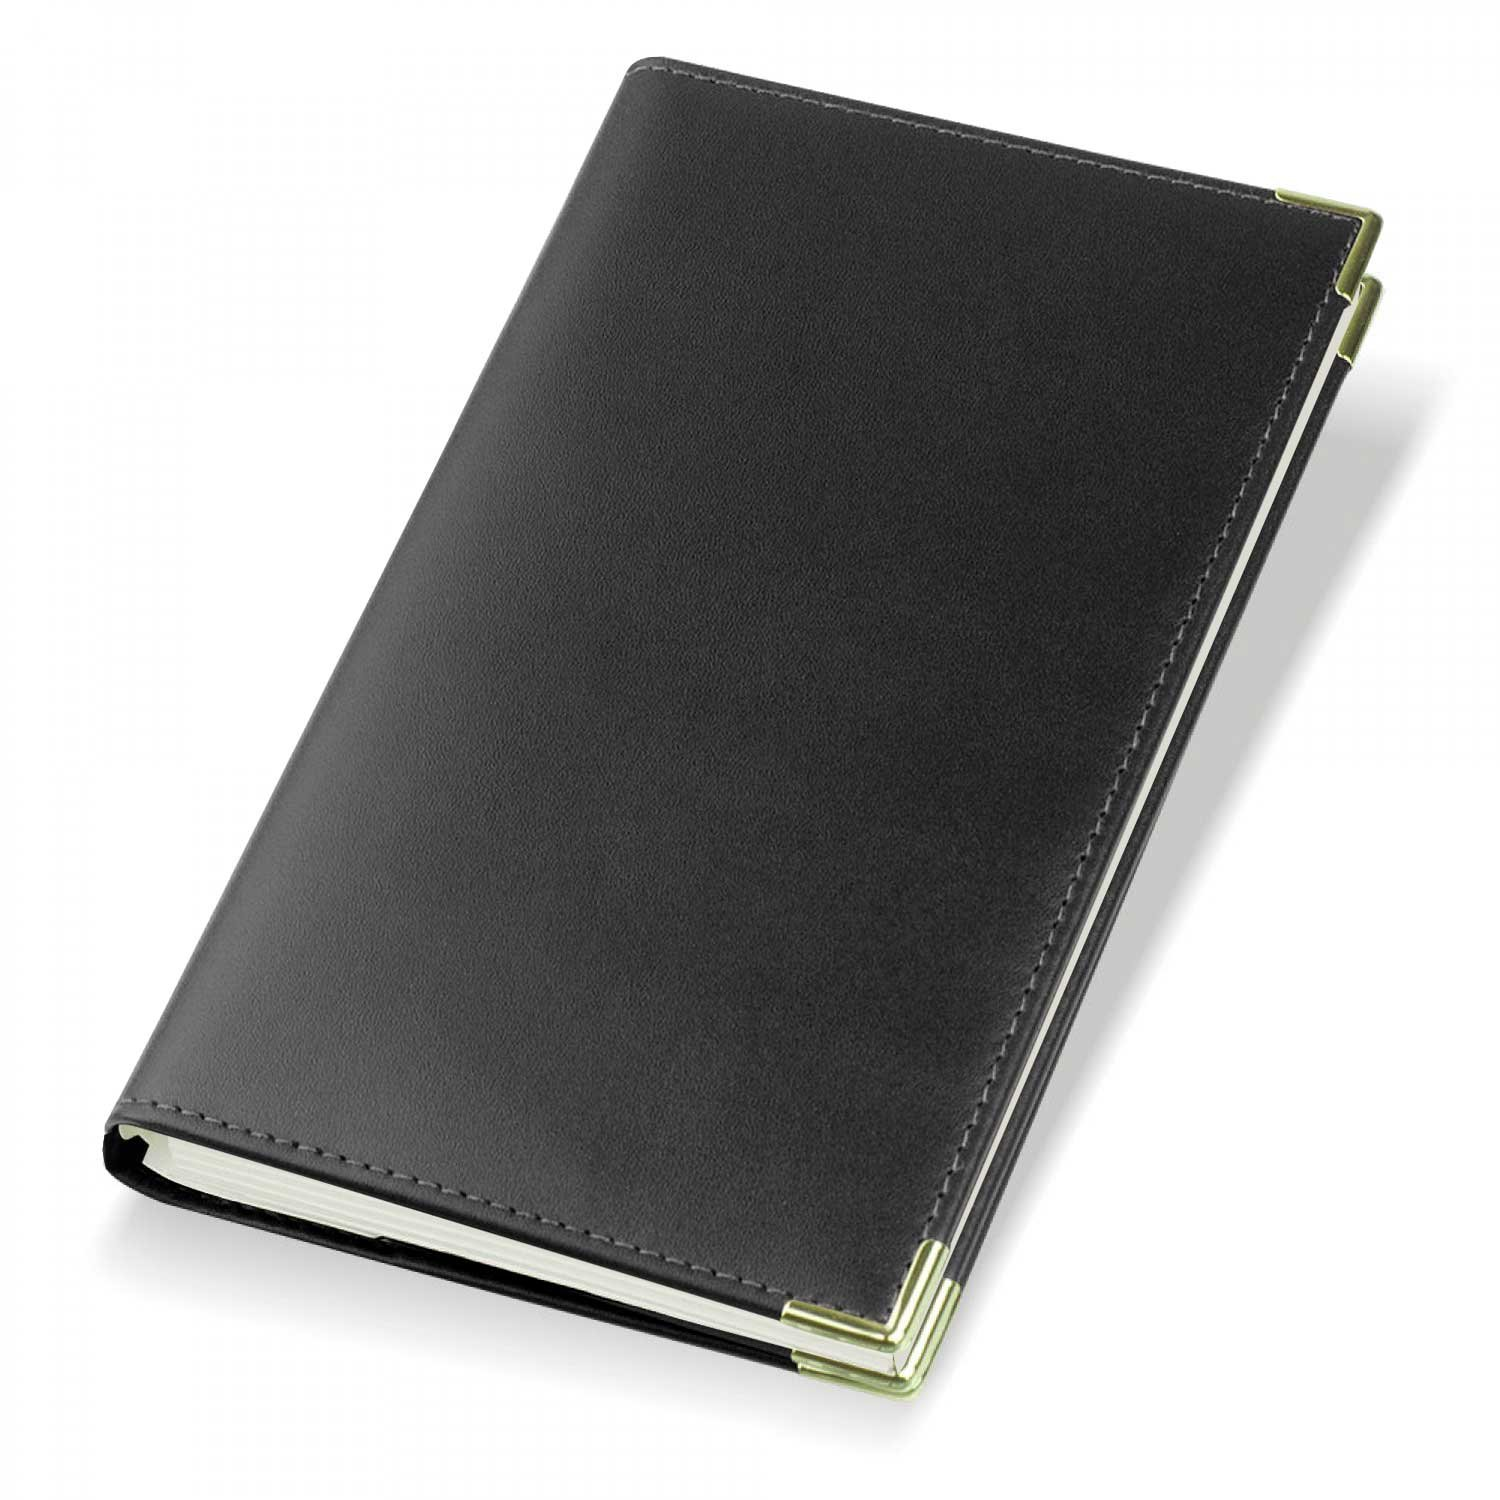 2019 Oxford Leather Diary Cover and Diary Insert - Black - Refillable - 901 Gilt Edged Promotions